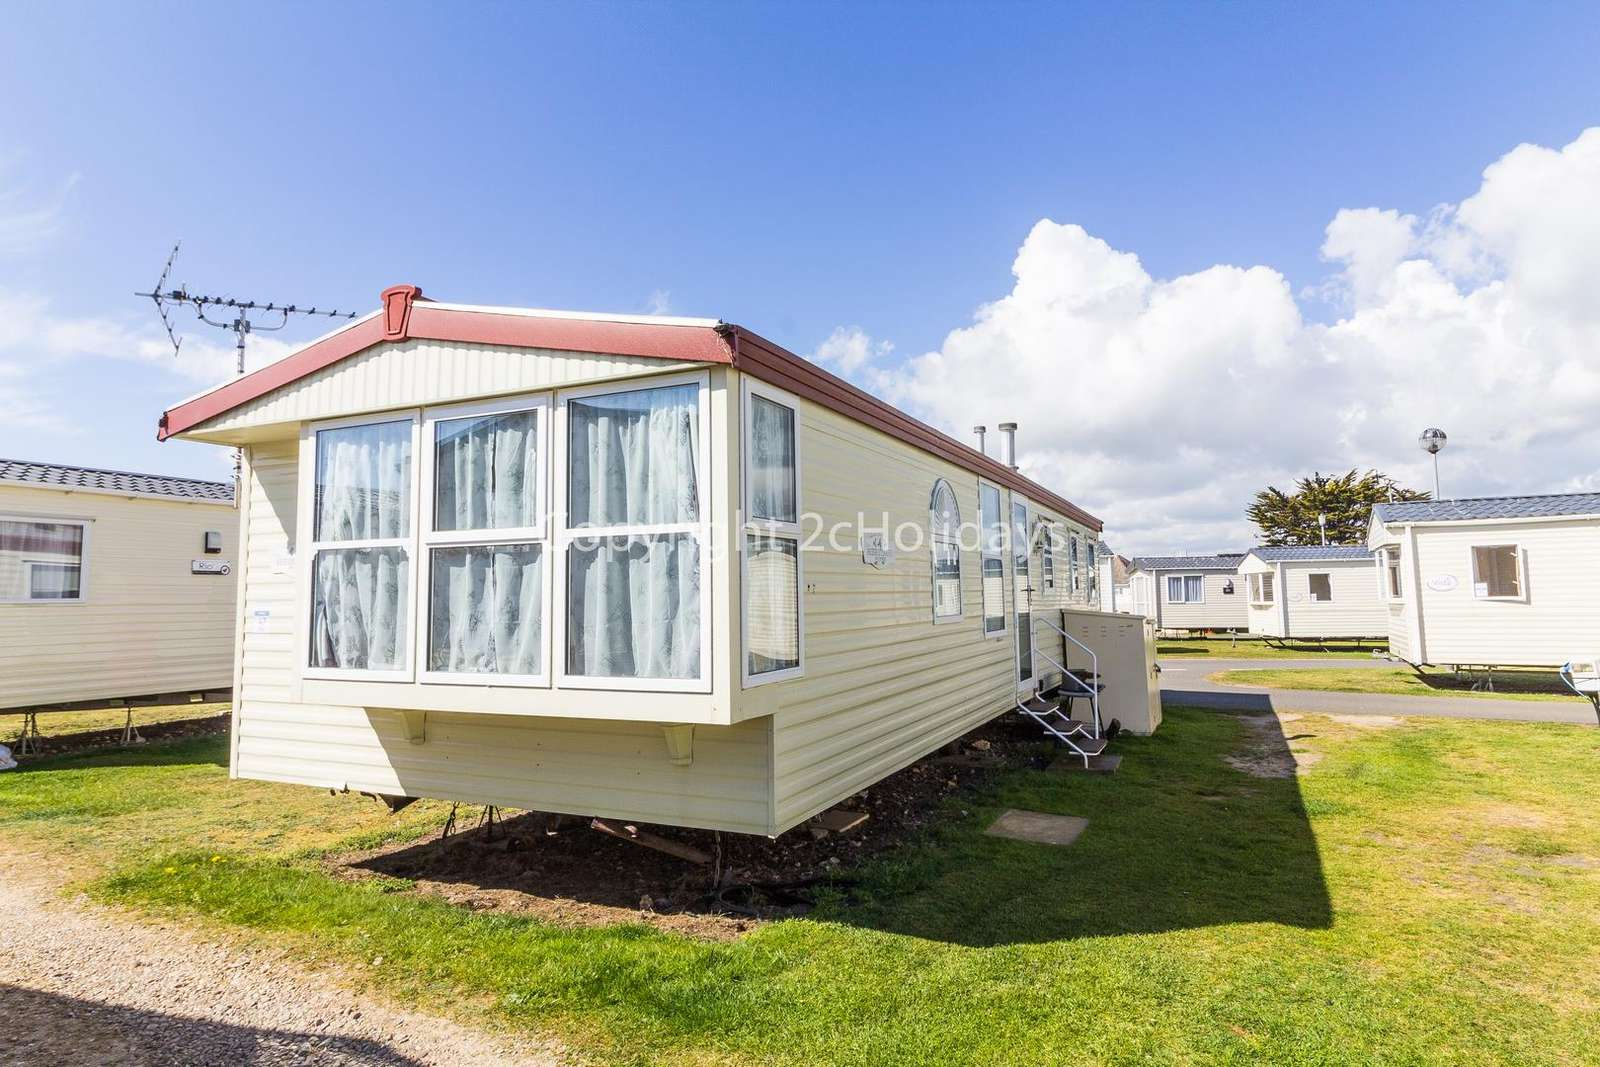 Sited on a great holiday park with a stunning beach only a short walk away